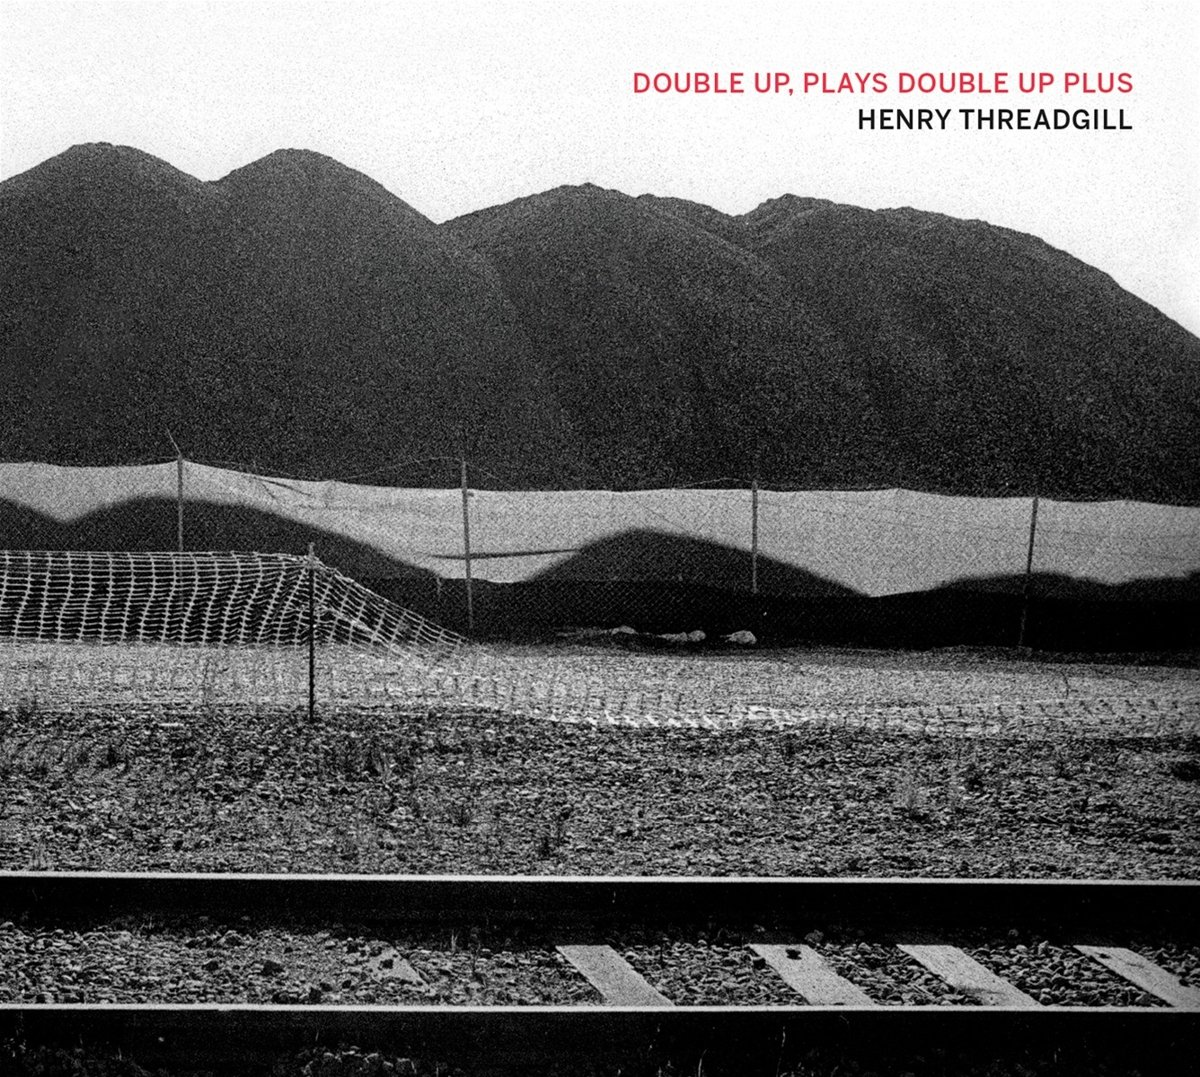 CD : Henry Threadgill - Double Up Plays Double Up Plus (CD)